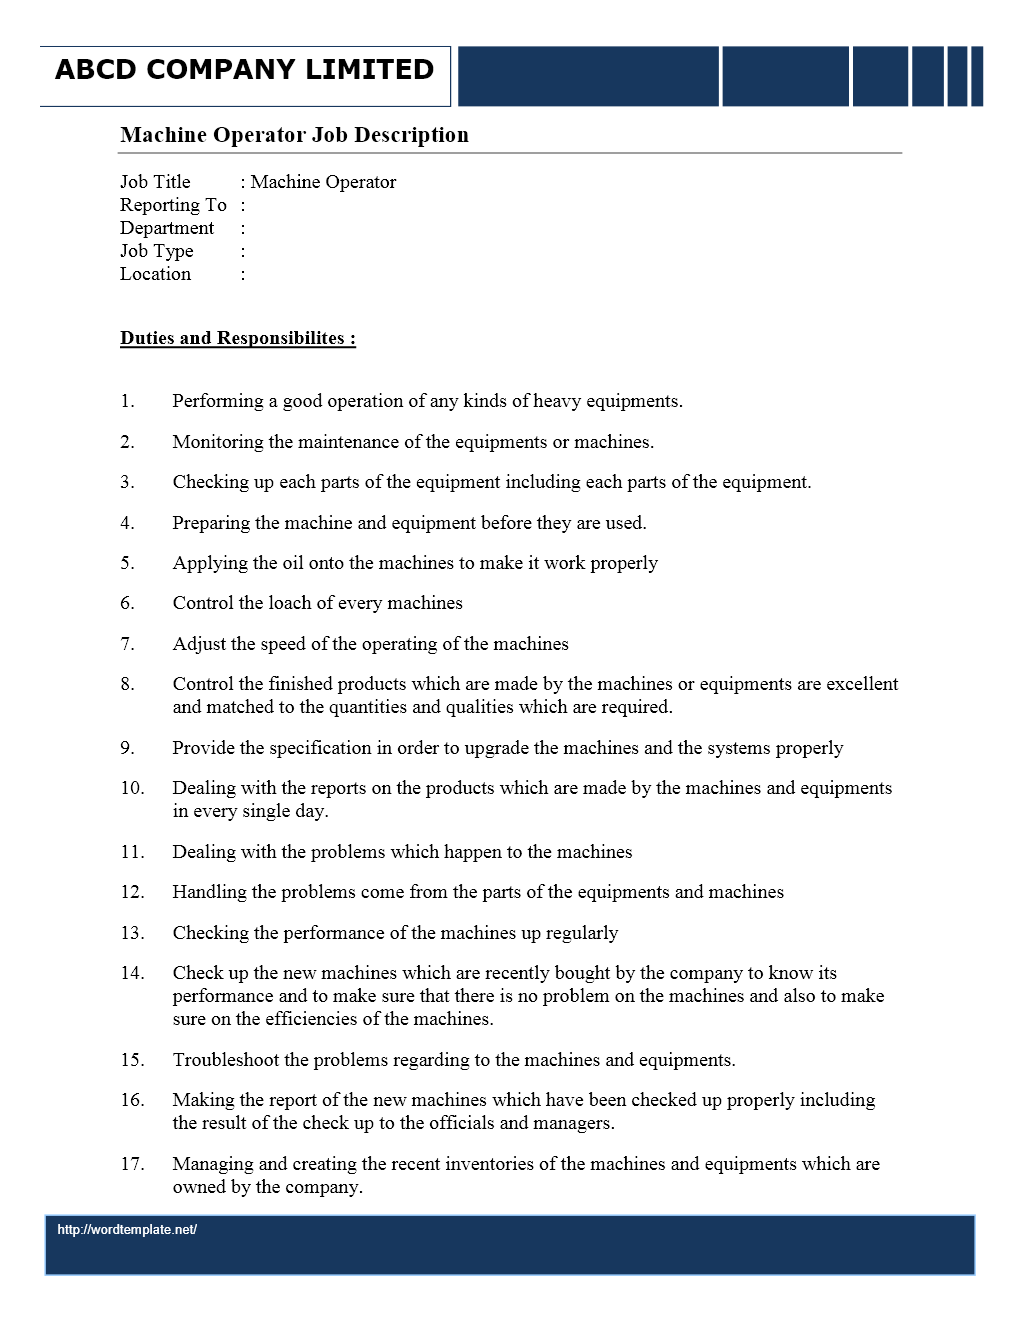 machine operator job description duties and responsibilities - Machine Operator Job Description For Resume